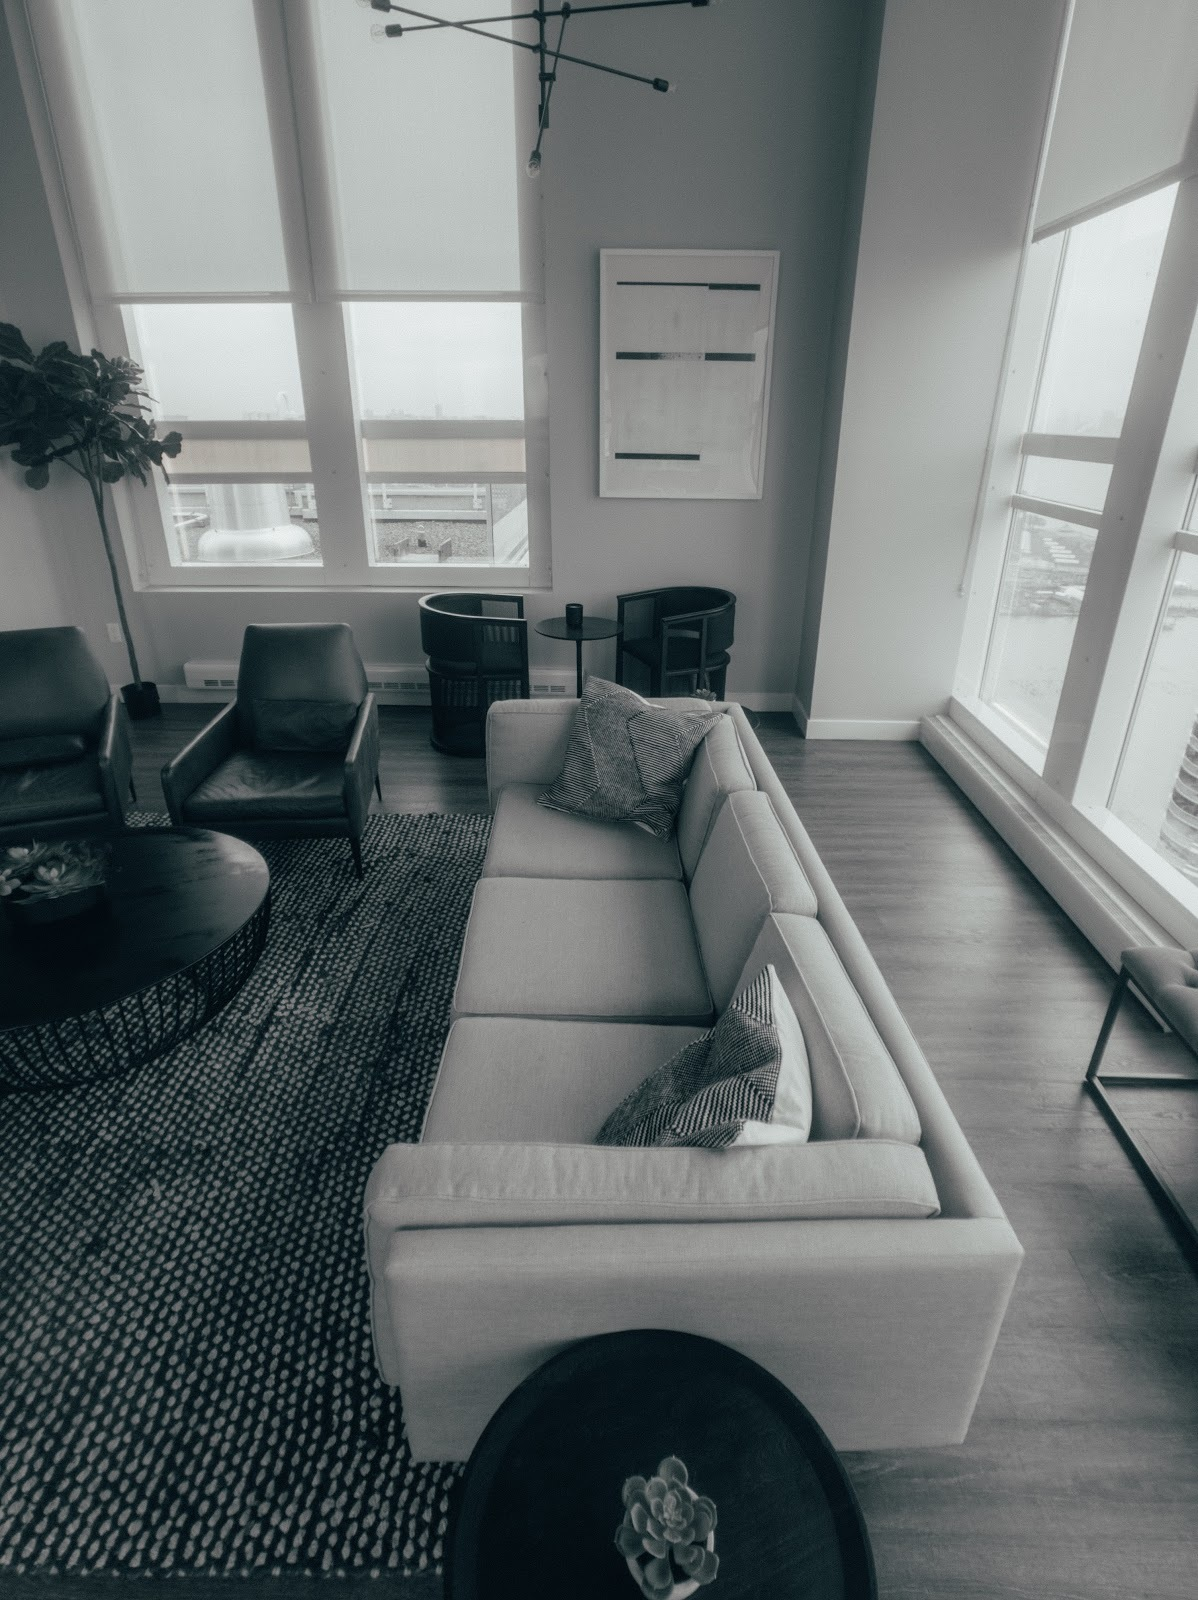 living-room-with-specific-furniture-placement.jpg#asset:31469